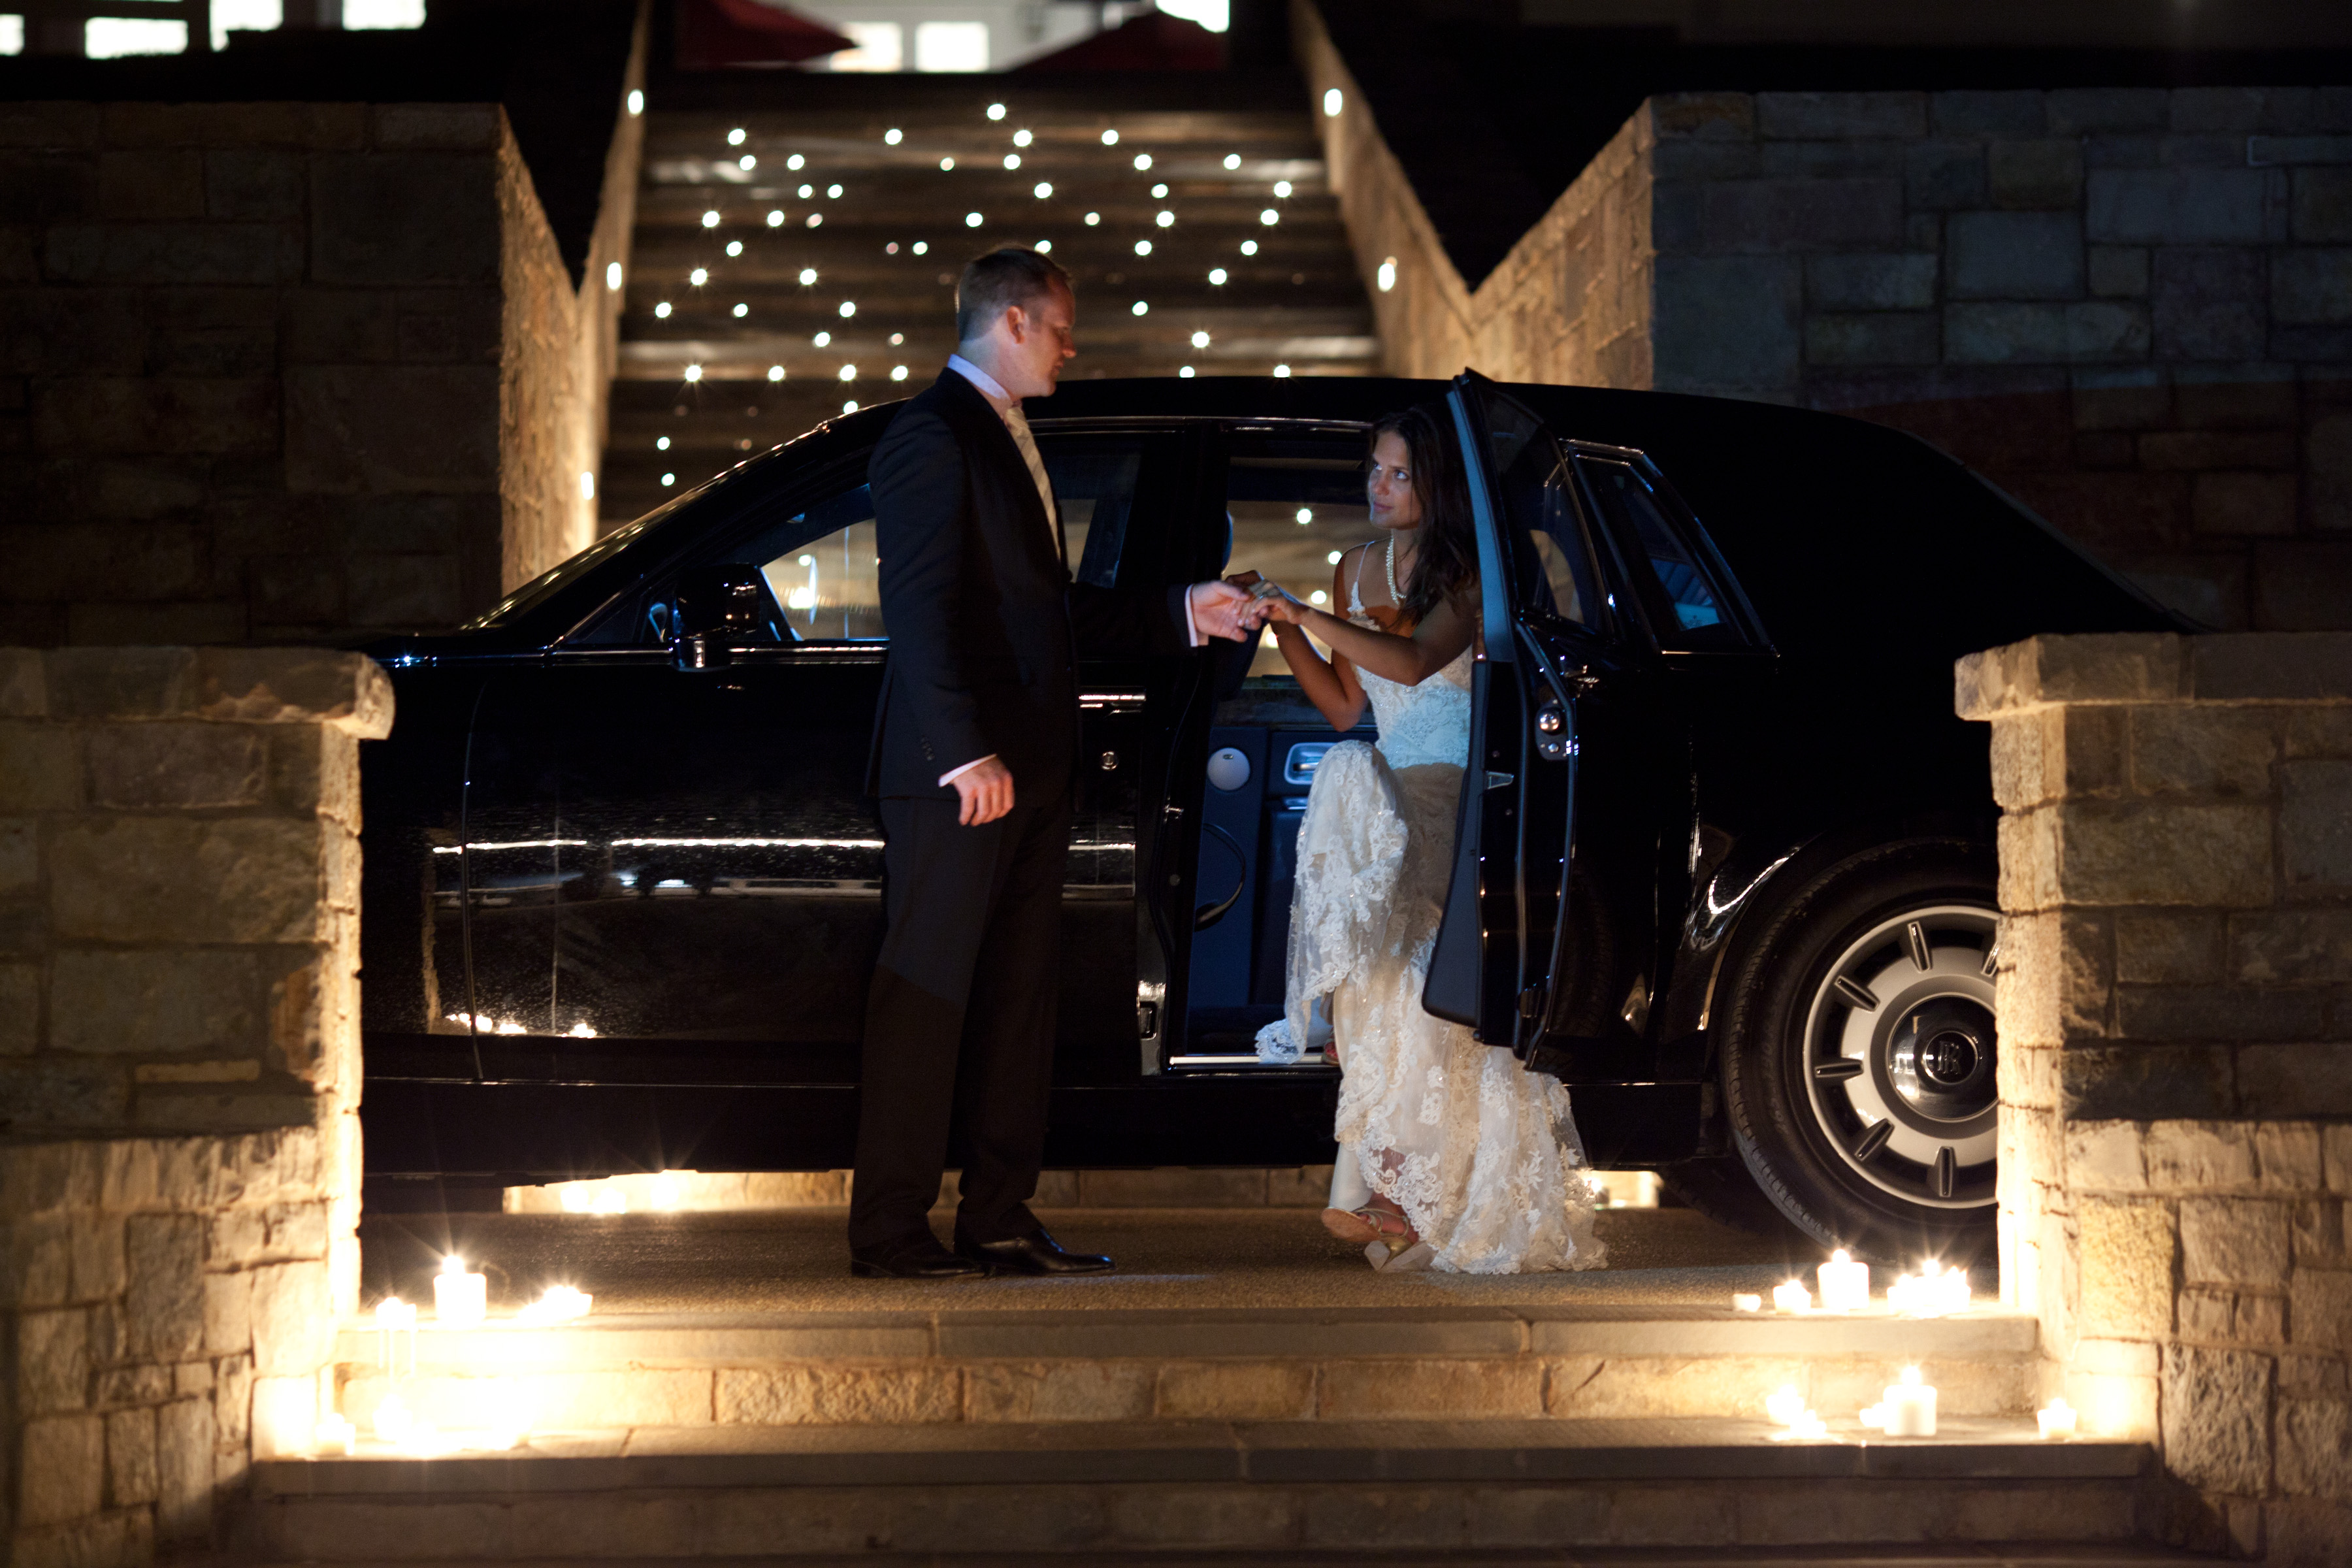 Bride and Groom emerge from Rolls Royce at Mount Ida Farm